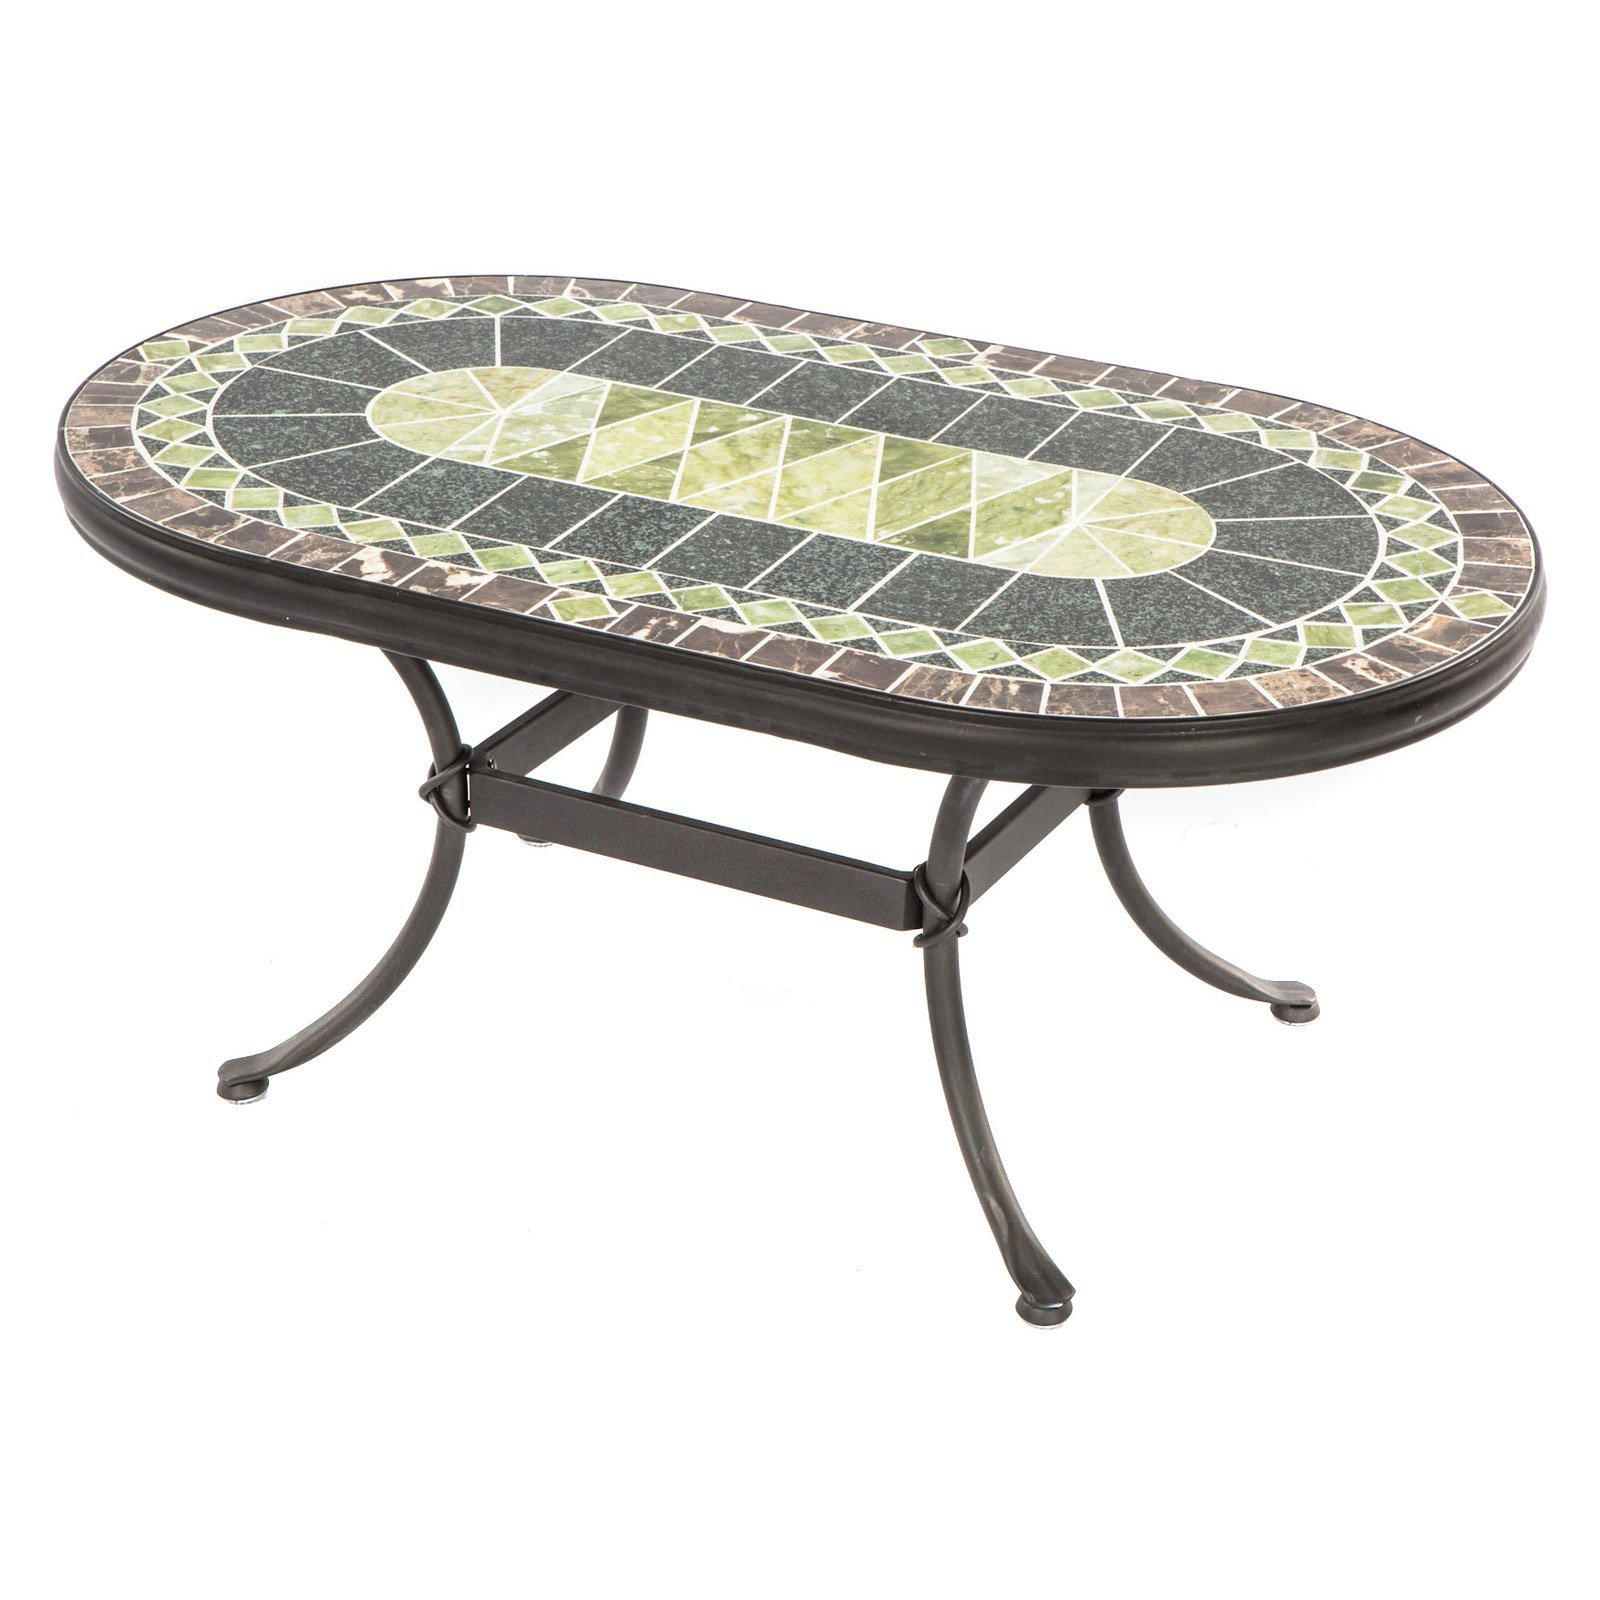 brilliant patio accent table metal tables side wonderful amazing mosaic outdoor coffee basilica home design inspiration crochet runner rustic grey end sofa drink threshold white